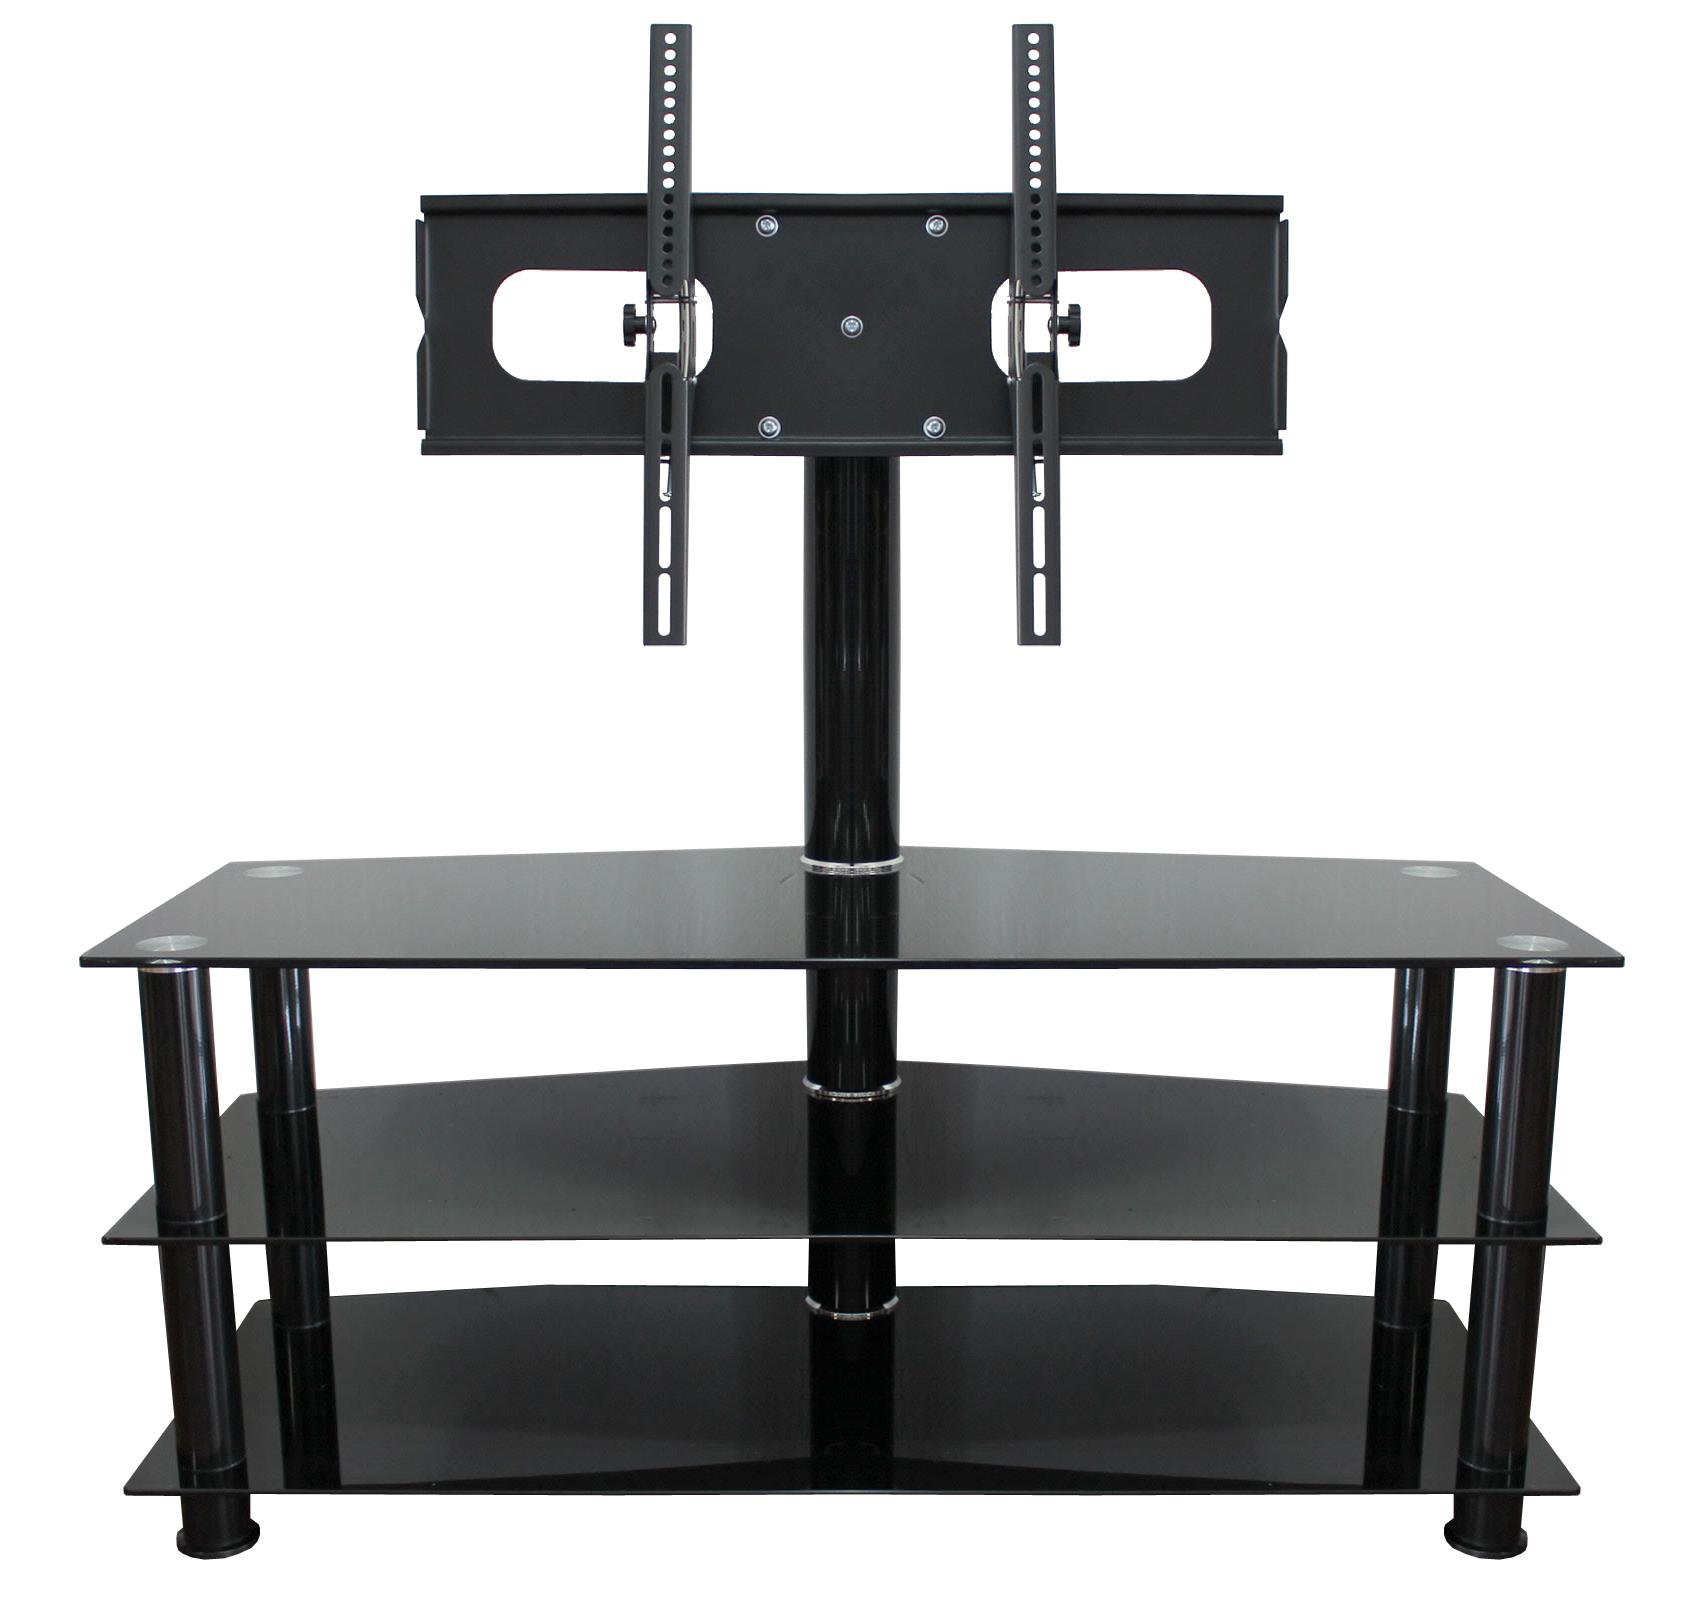 3 Tier Tempered Glass Tv Stand 32 50 Tv Mount Tv Stand 39900